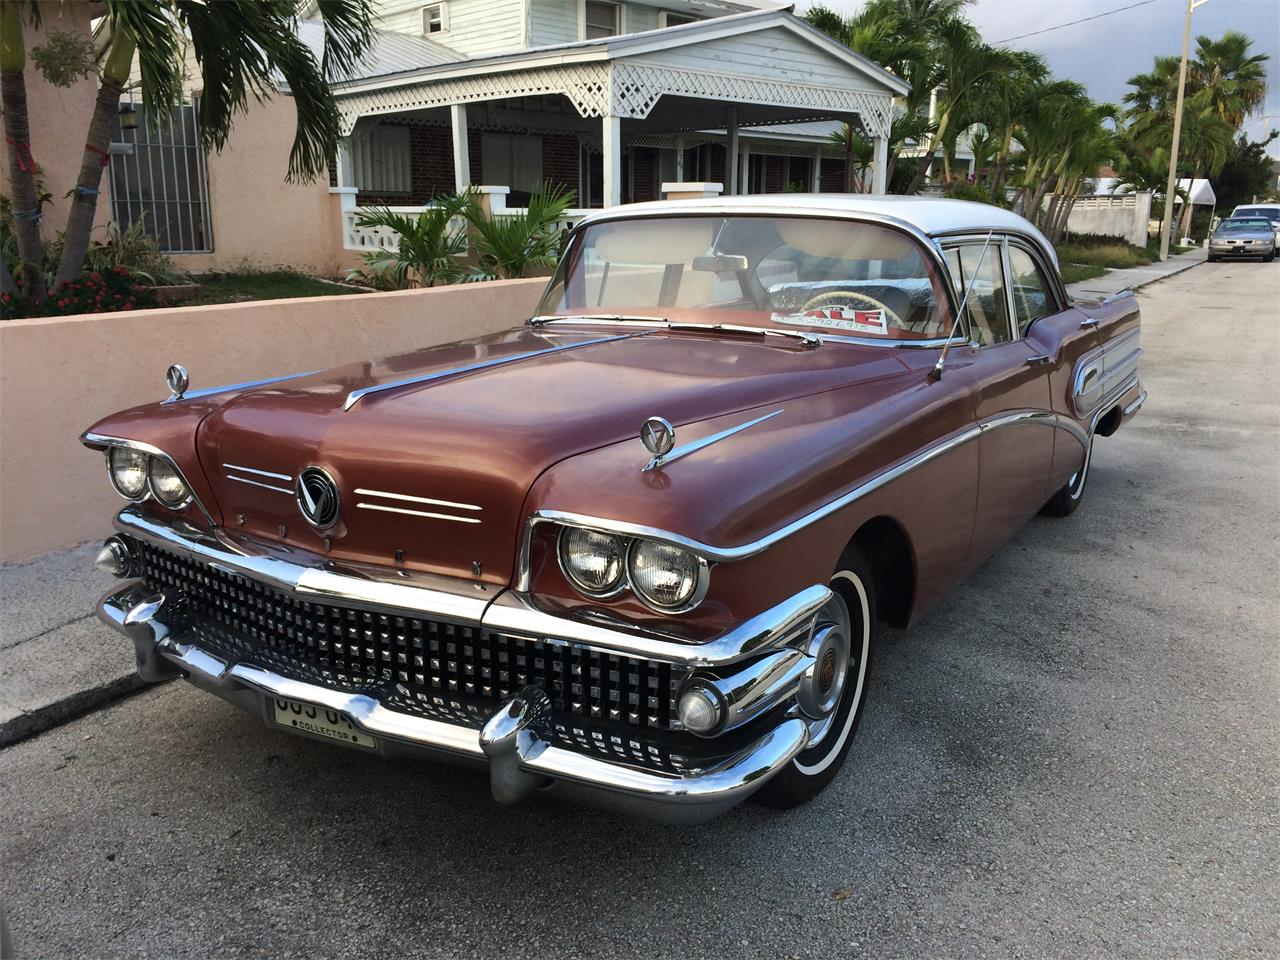 Large Picture of '58 Buick Special Offered by a Private Seller - FYP8